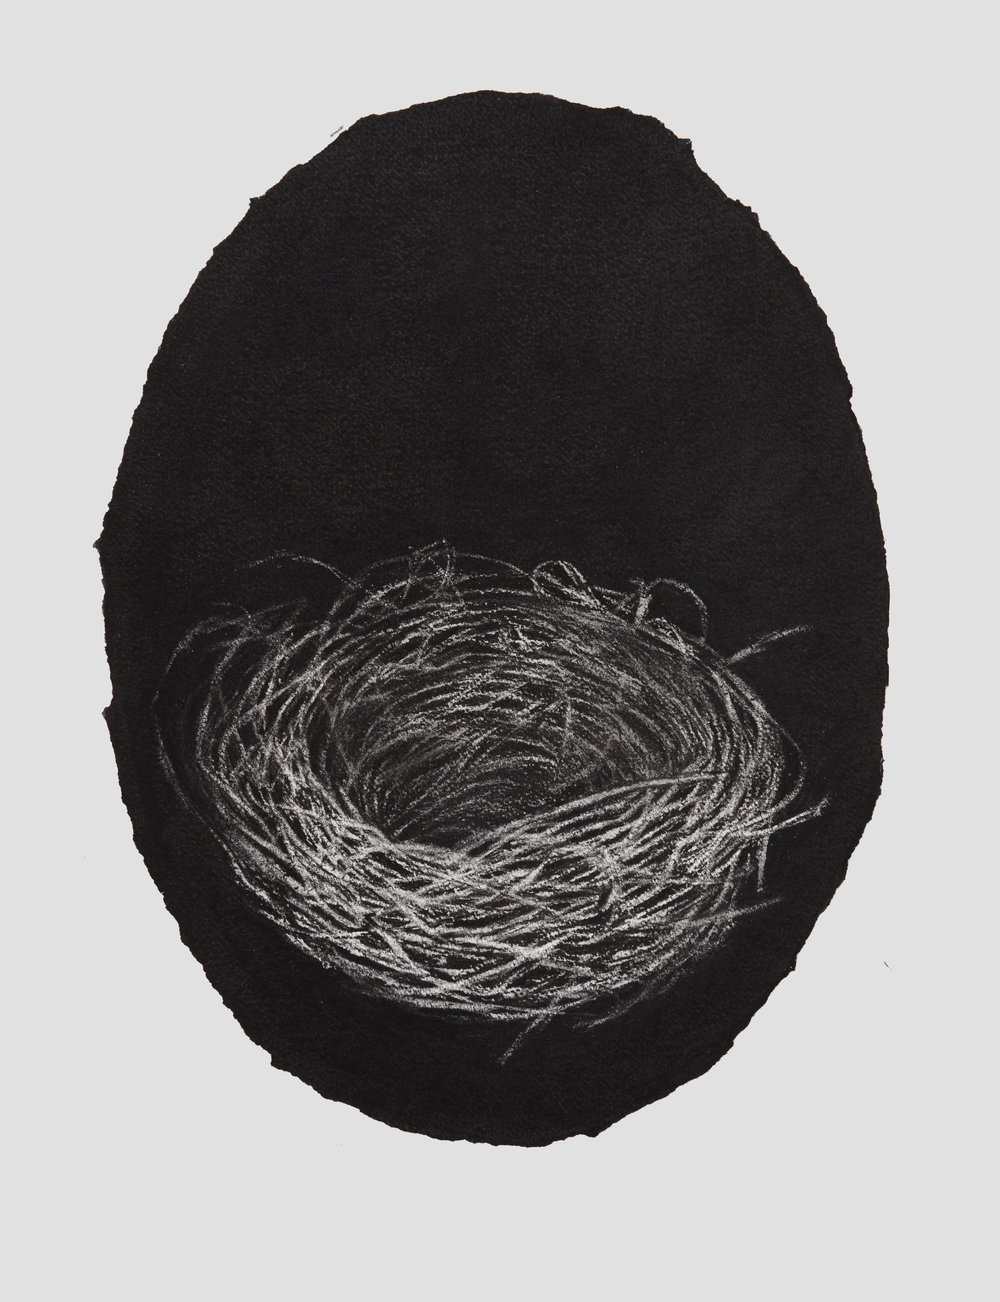 portrait nest, 2017, 44x33cm, charcoal on paper